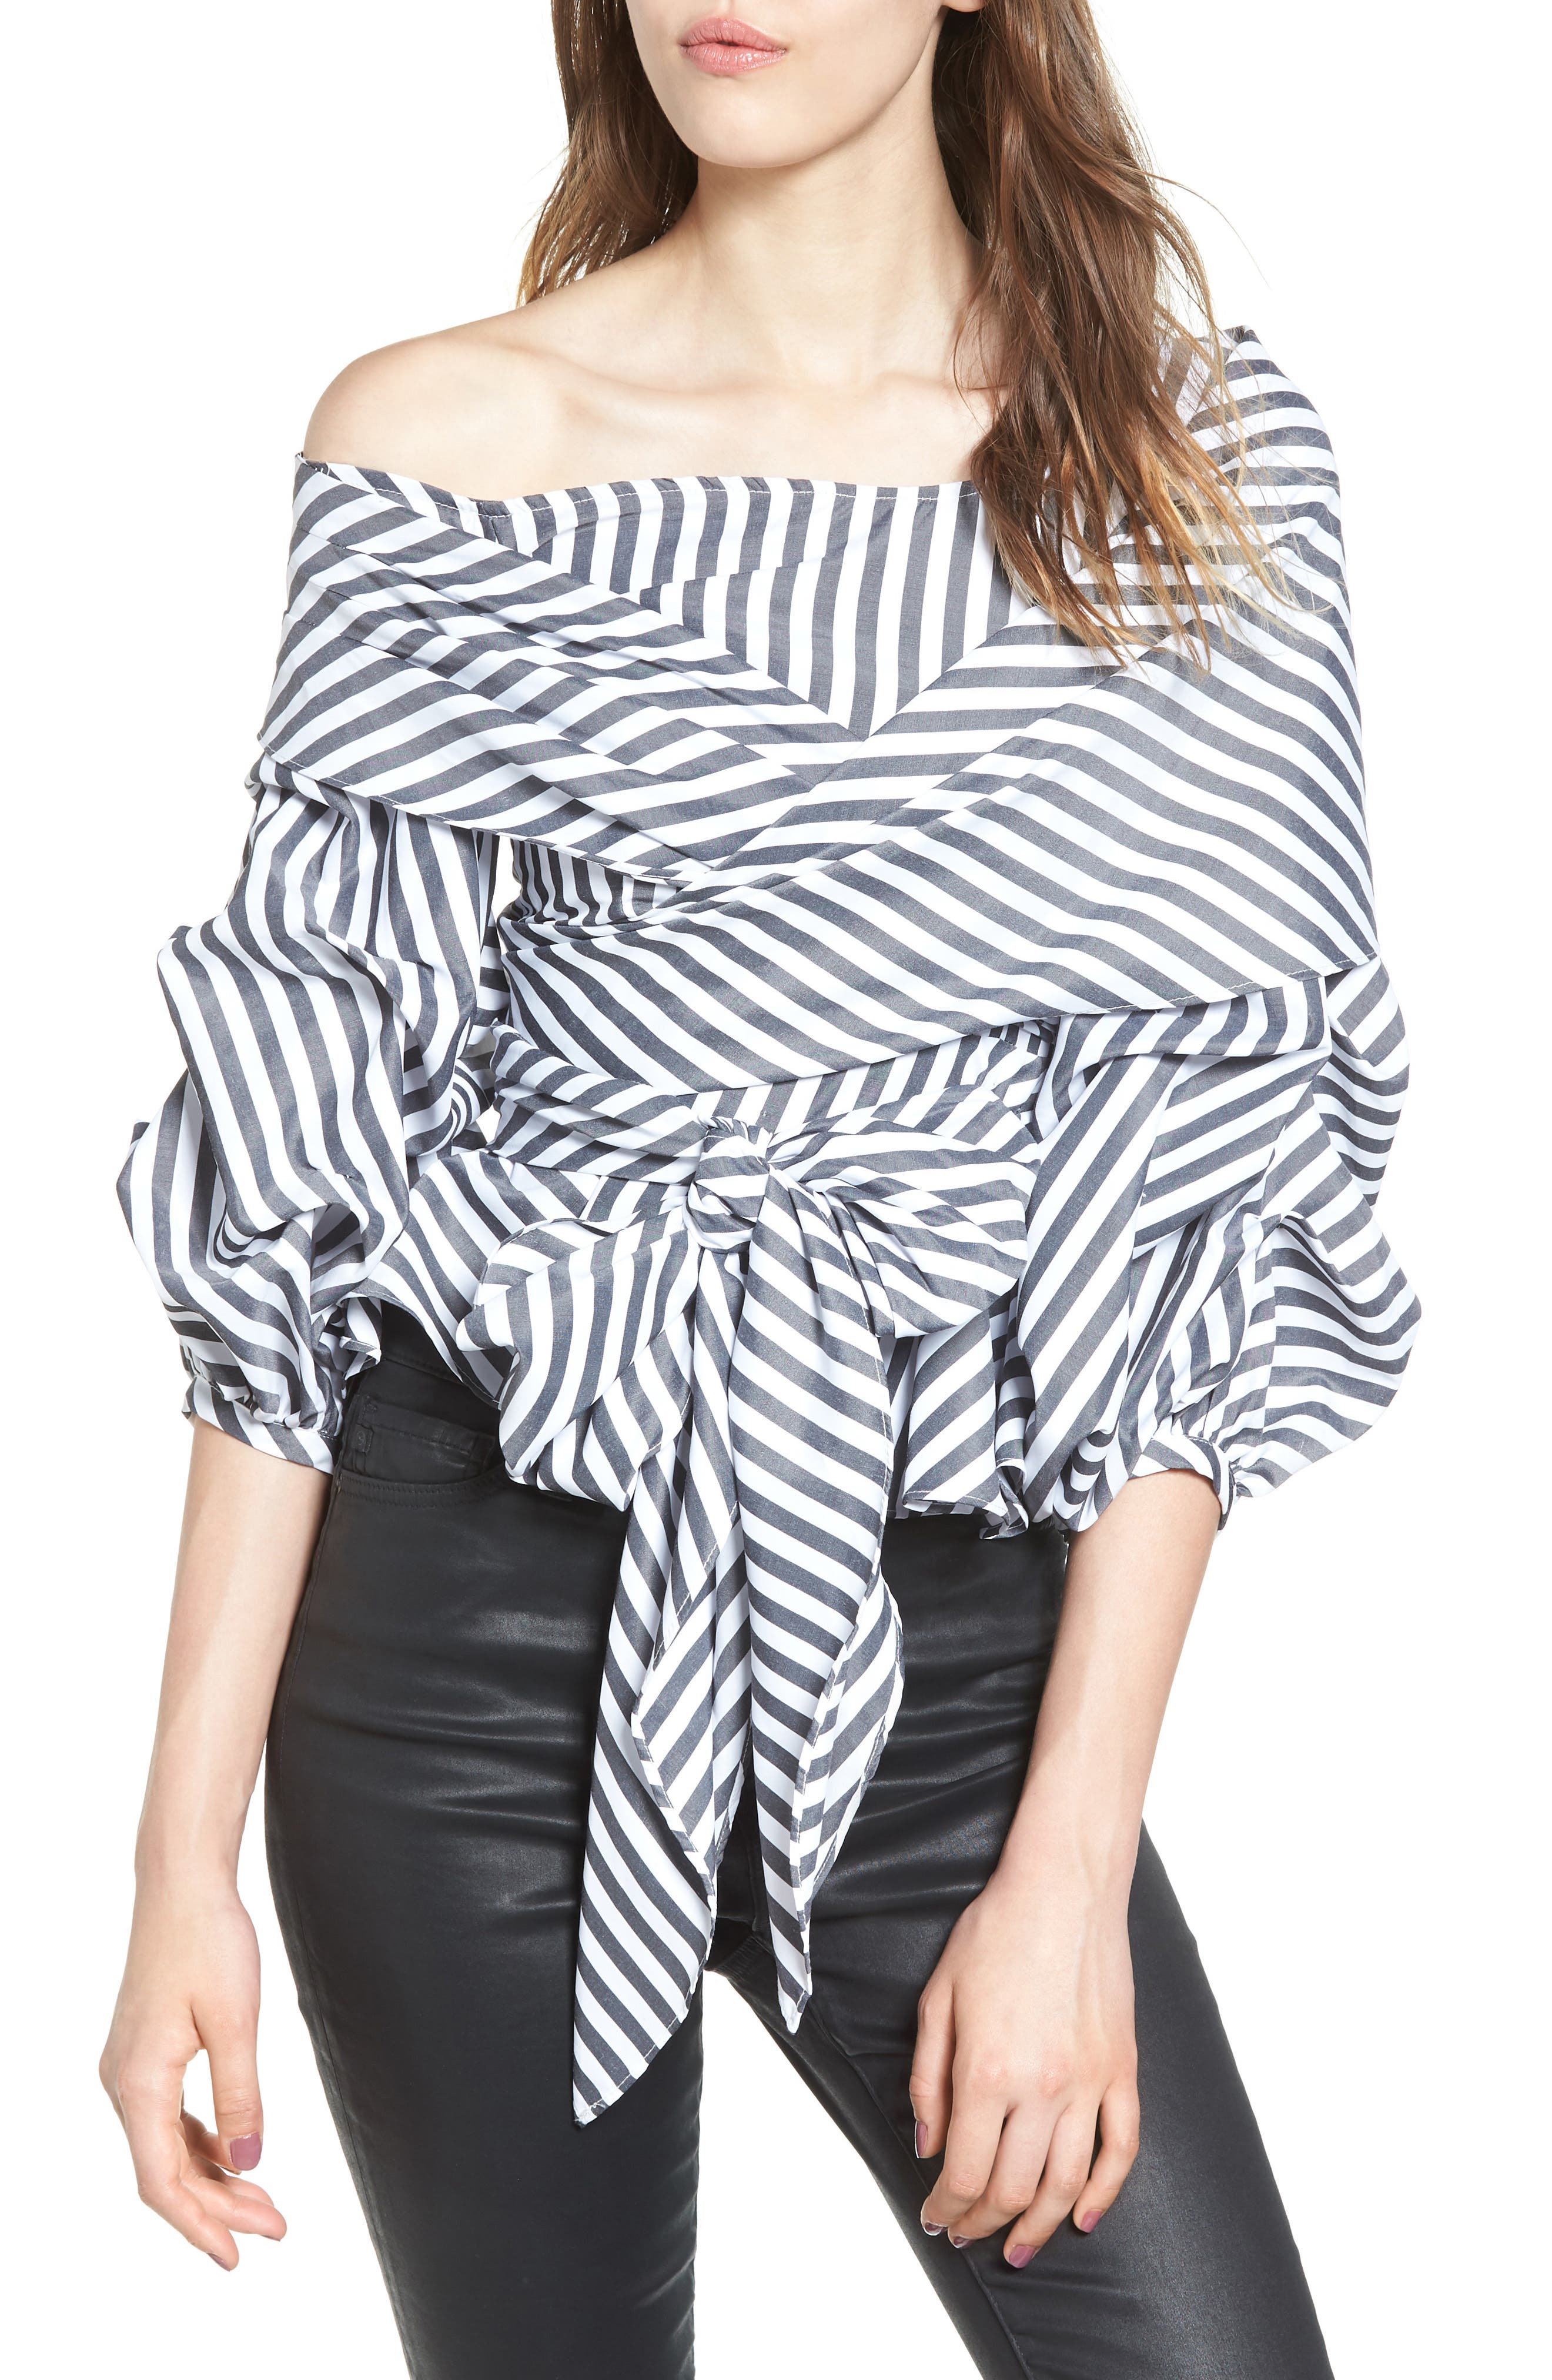 The Lovers Lane Top,                         Main,                         color, 020